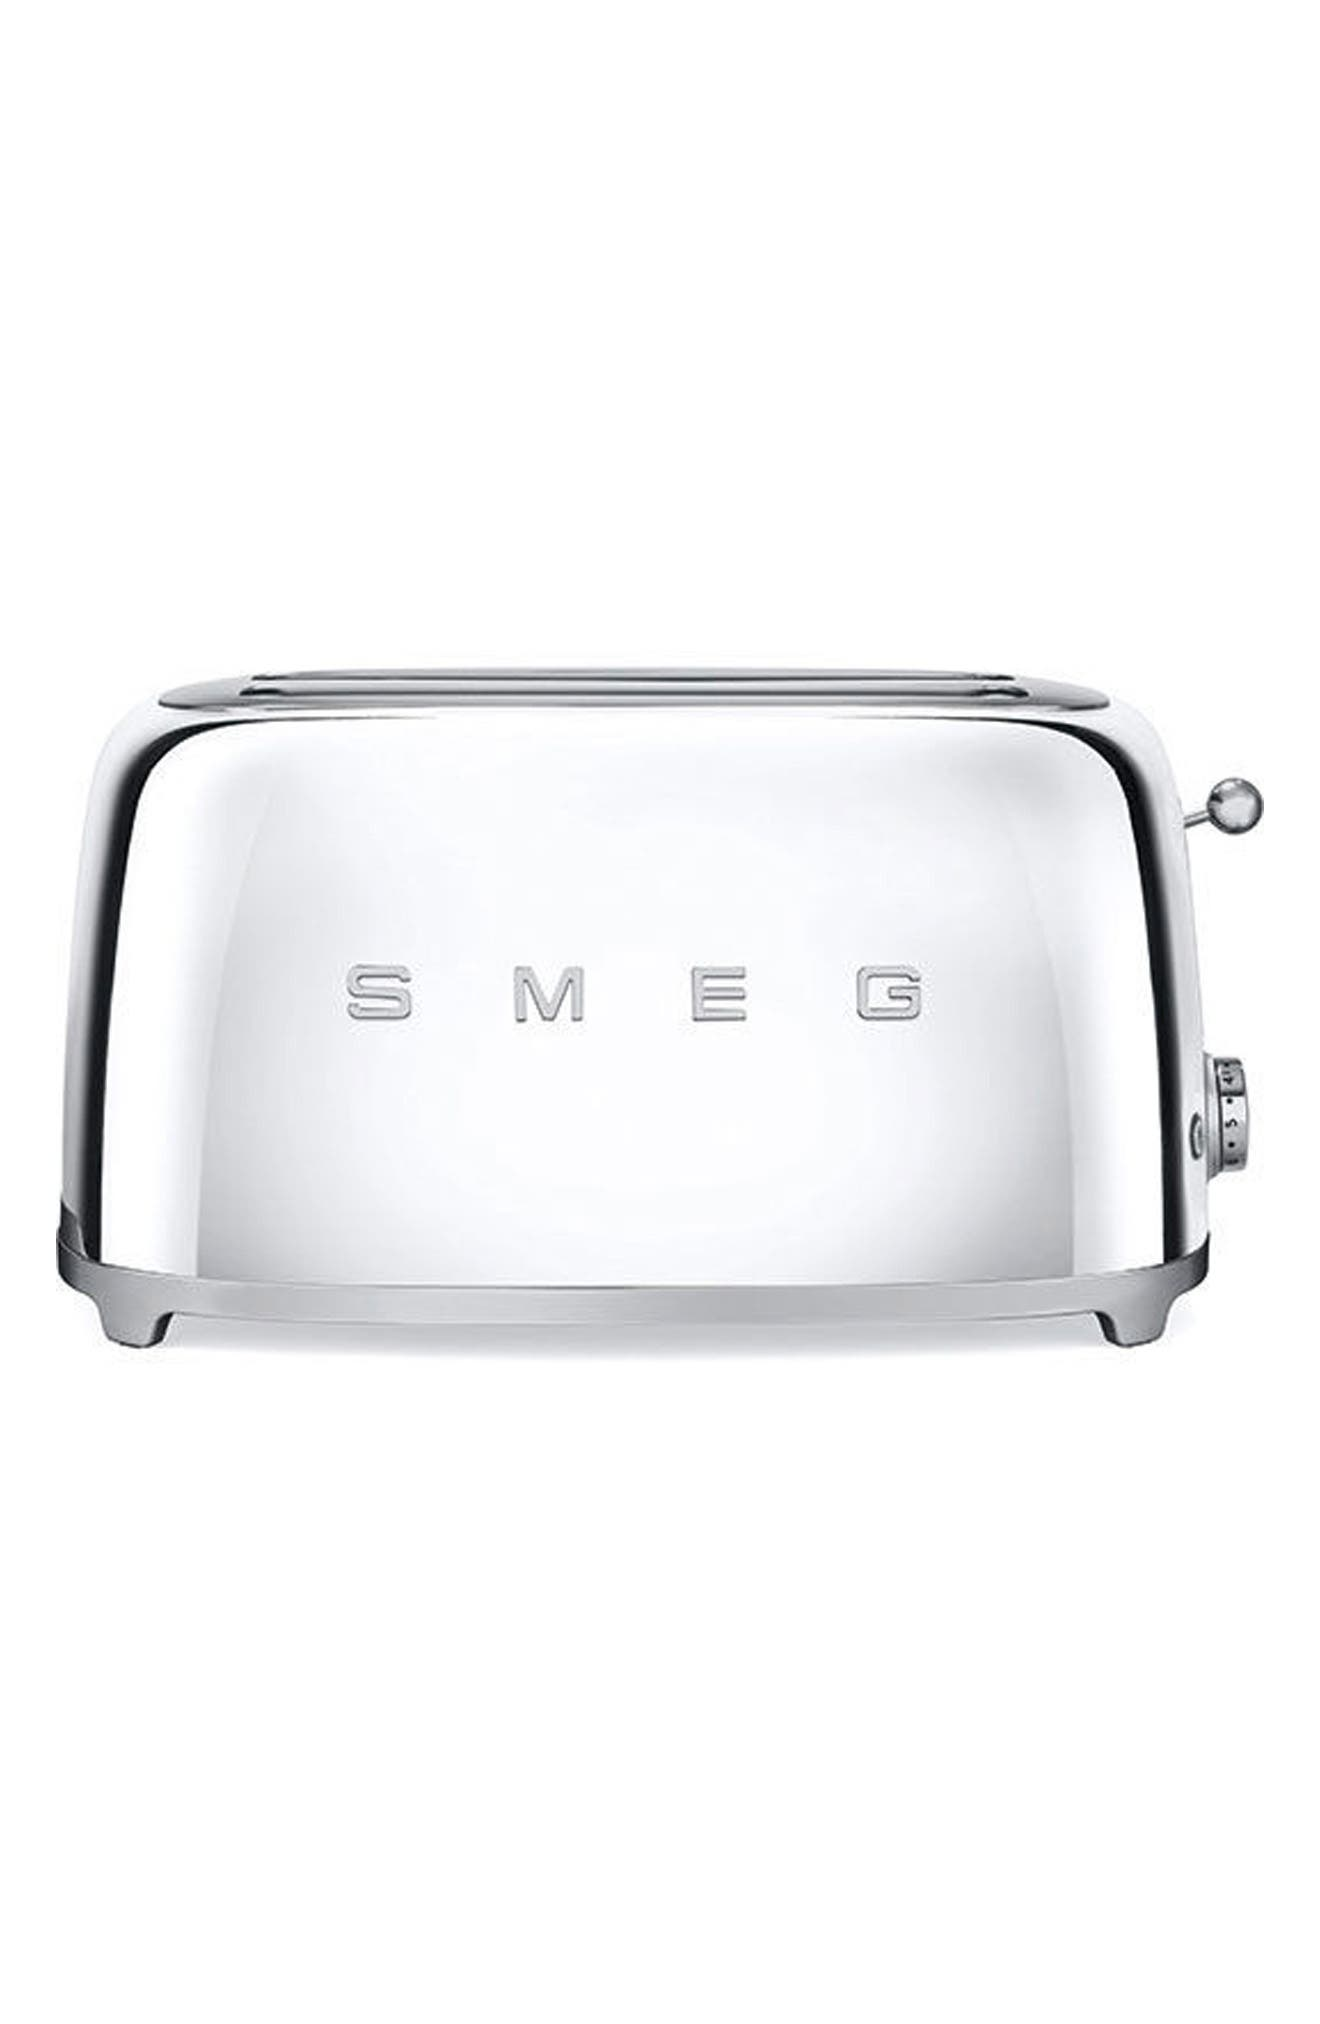 smeg 50s Retro Style Four-Slice Toaster